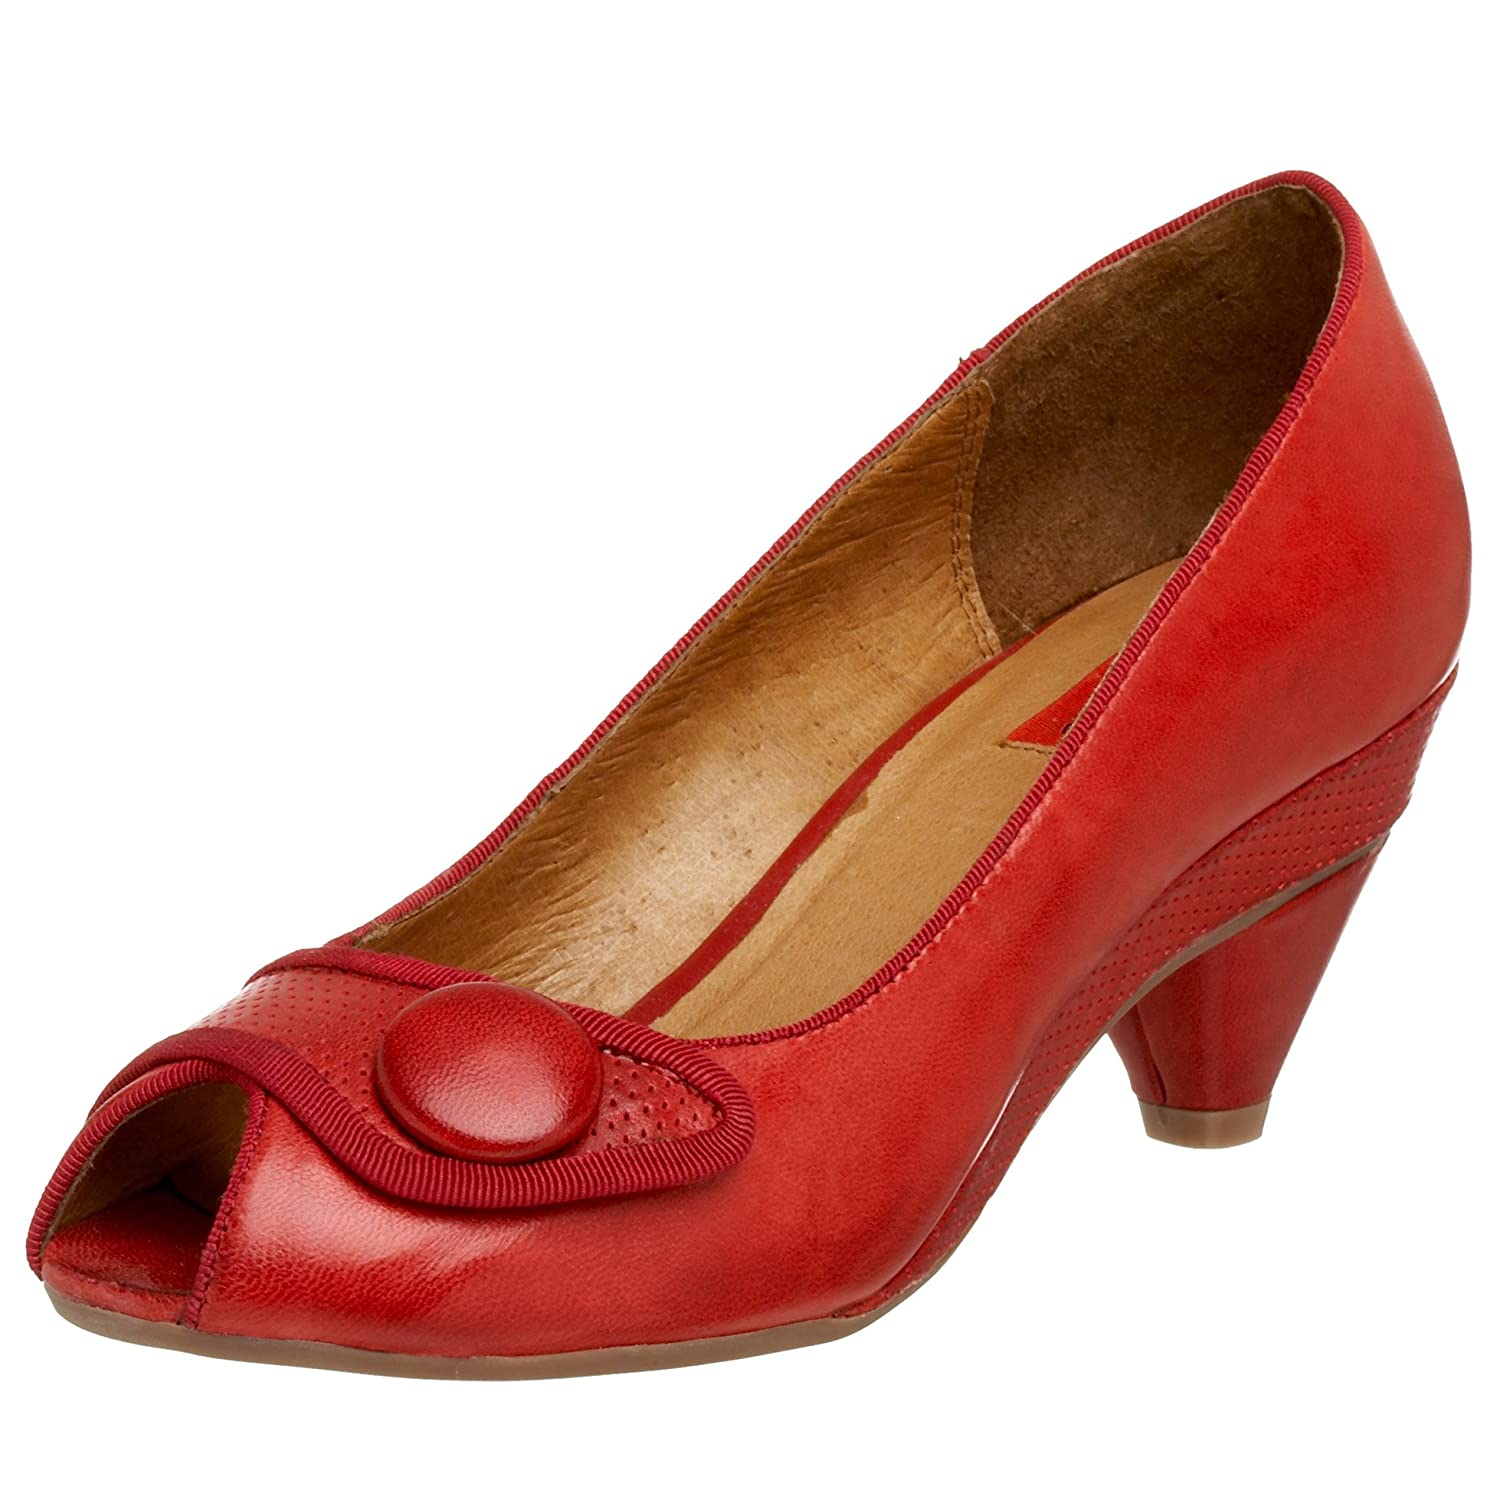 Miz Mooz Ruby Peep Toe Pump from endless.com